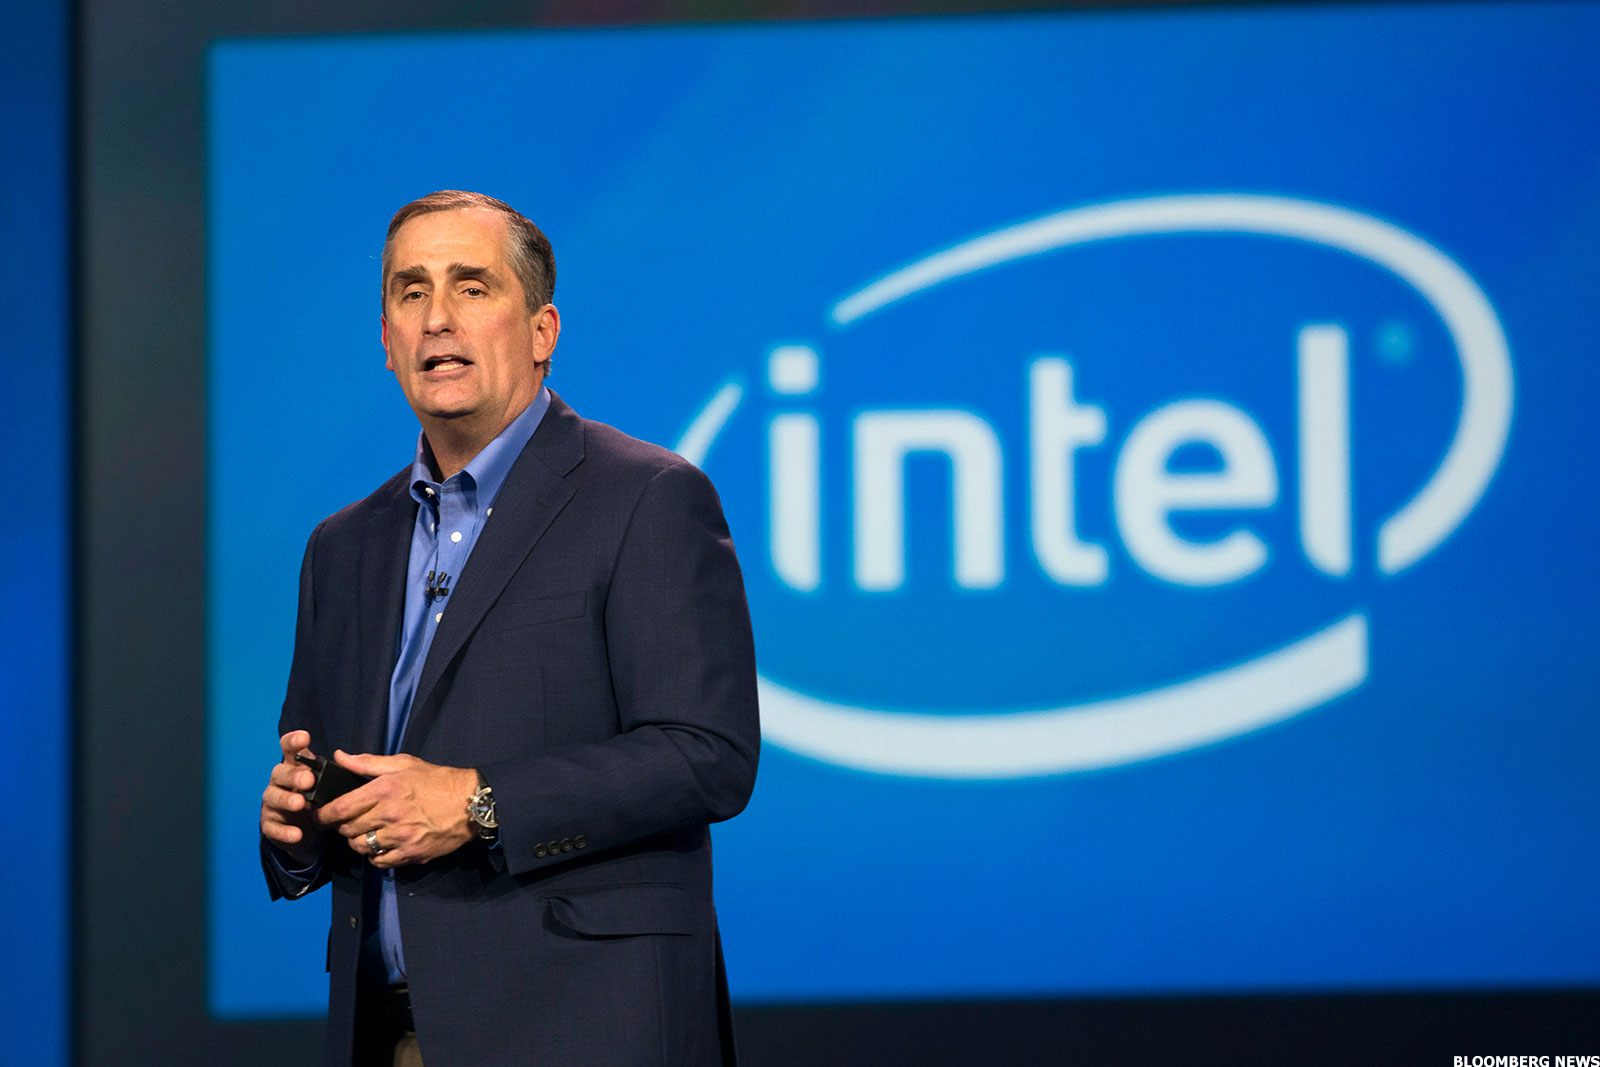 Intel's (INTC) Latest Announcements Show It's Serious About